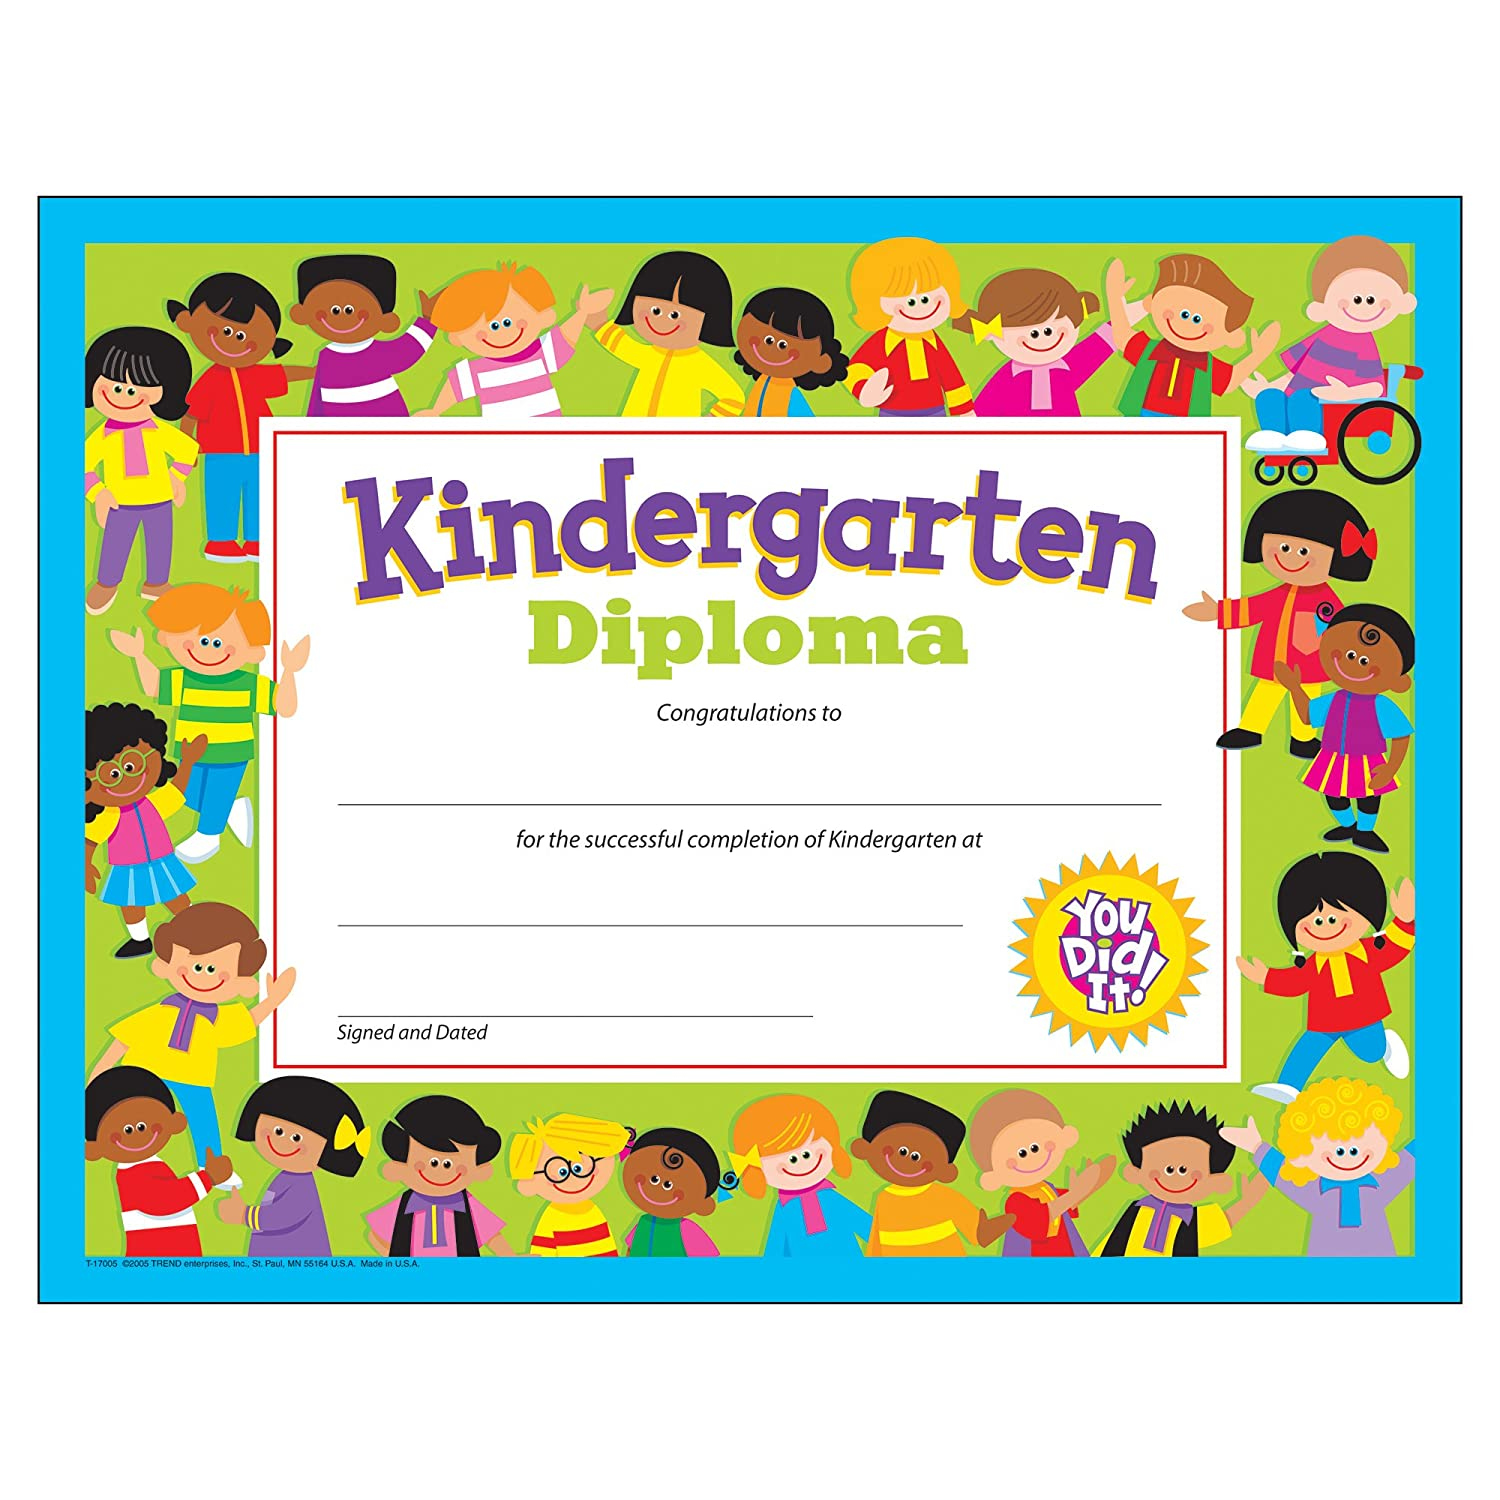 kindergarten graduation diplomas  Amazon.com : Kindergarten Diploma : Blank Certificates : Office ...